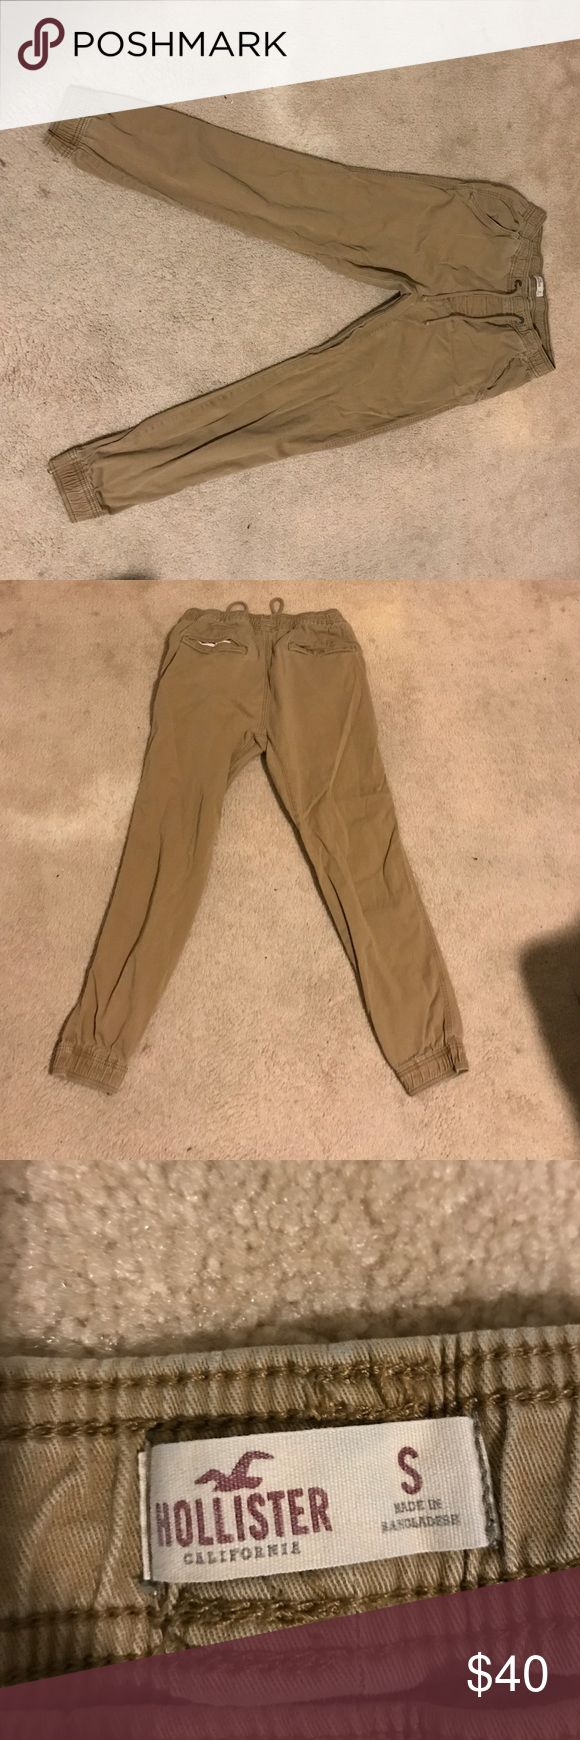 Hollister Joggers Almost new joggers, only worn 3 times, slight distressed looked, great condition, loose fitting, comfortable elastic. Negotiable. Hollister Pants Sweatpants & Joggers